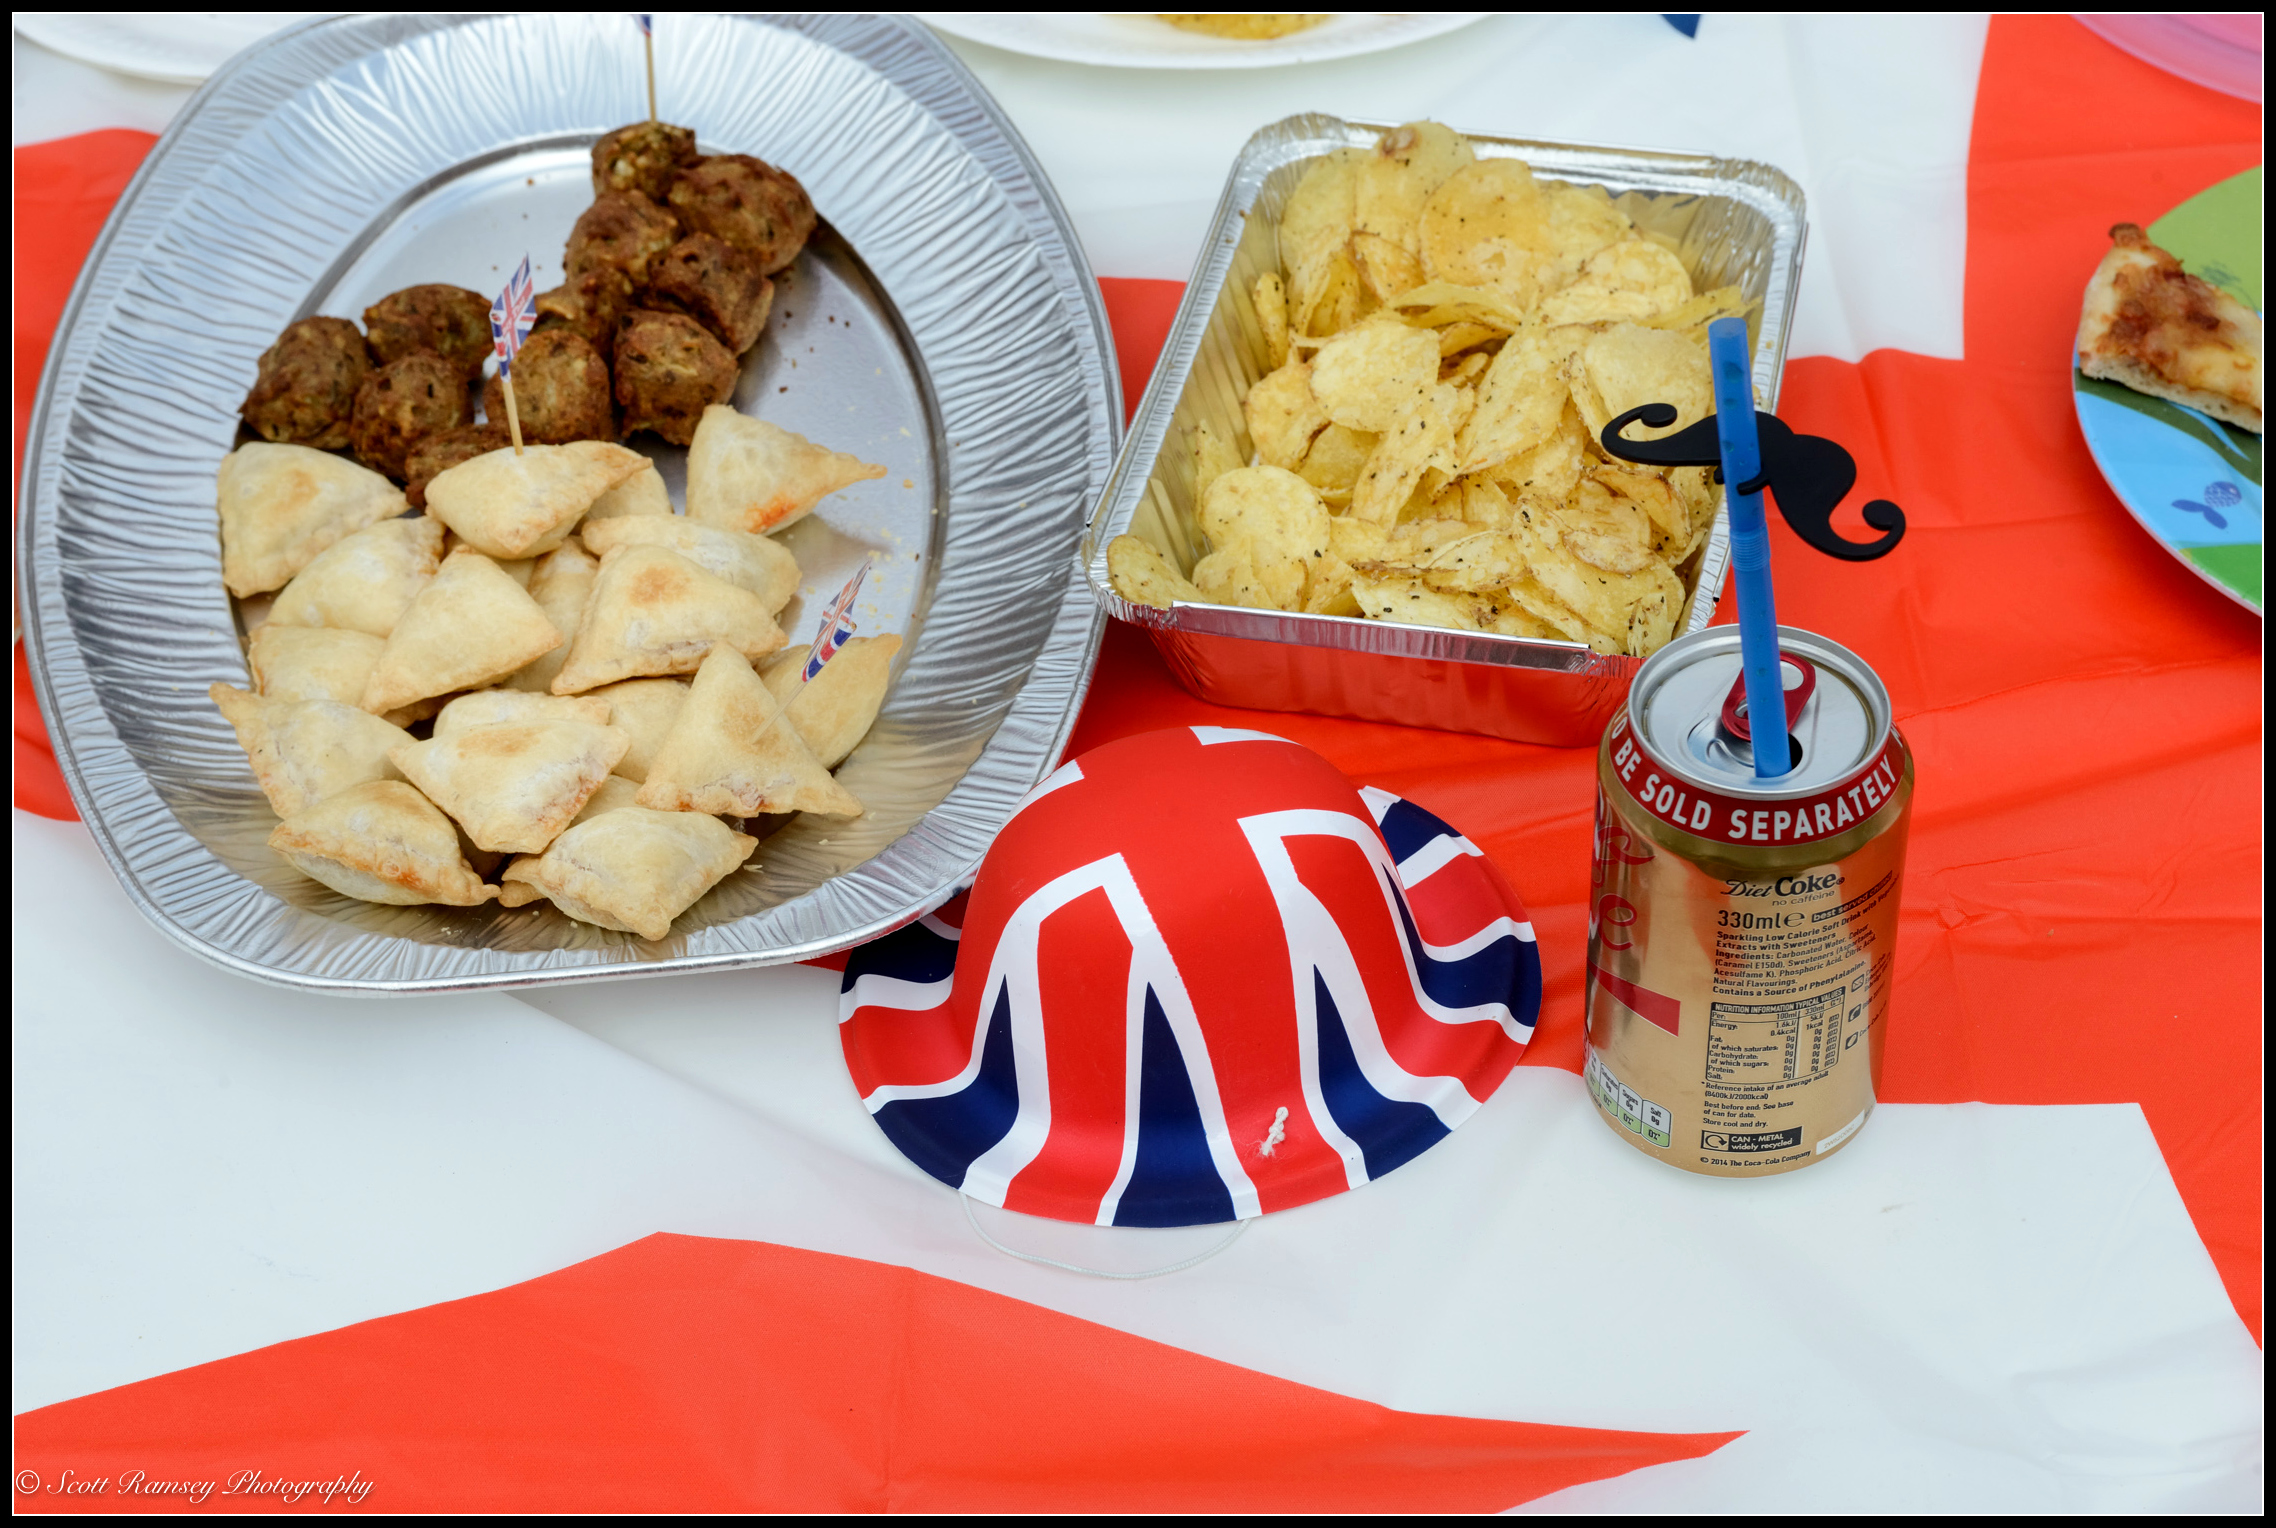 Party food, drinkand a union jack party haton a Saint Georges flag table cloth. VE day 70th anniversary street party in Southsea. © Scott Ramsey Photography.